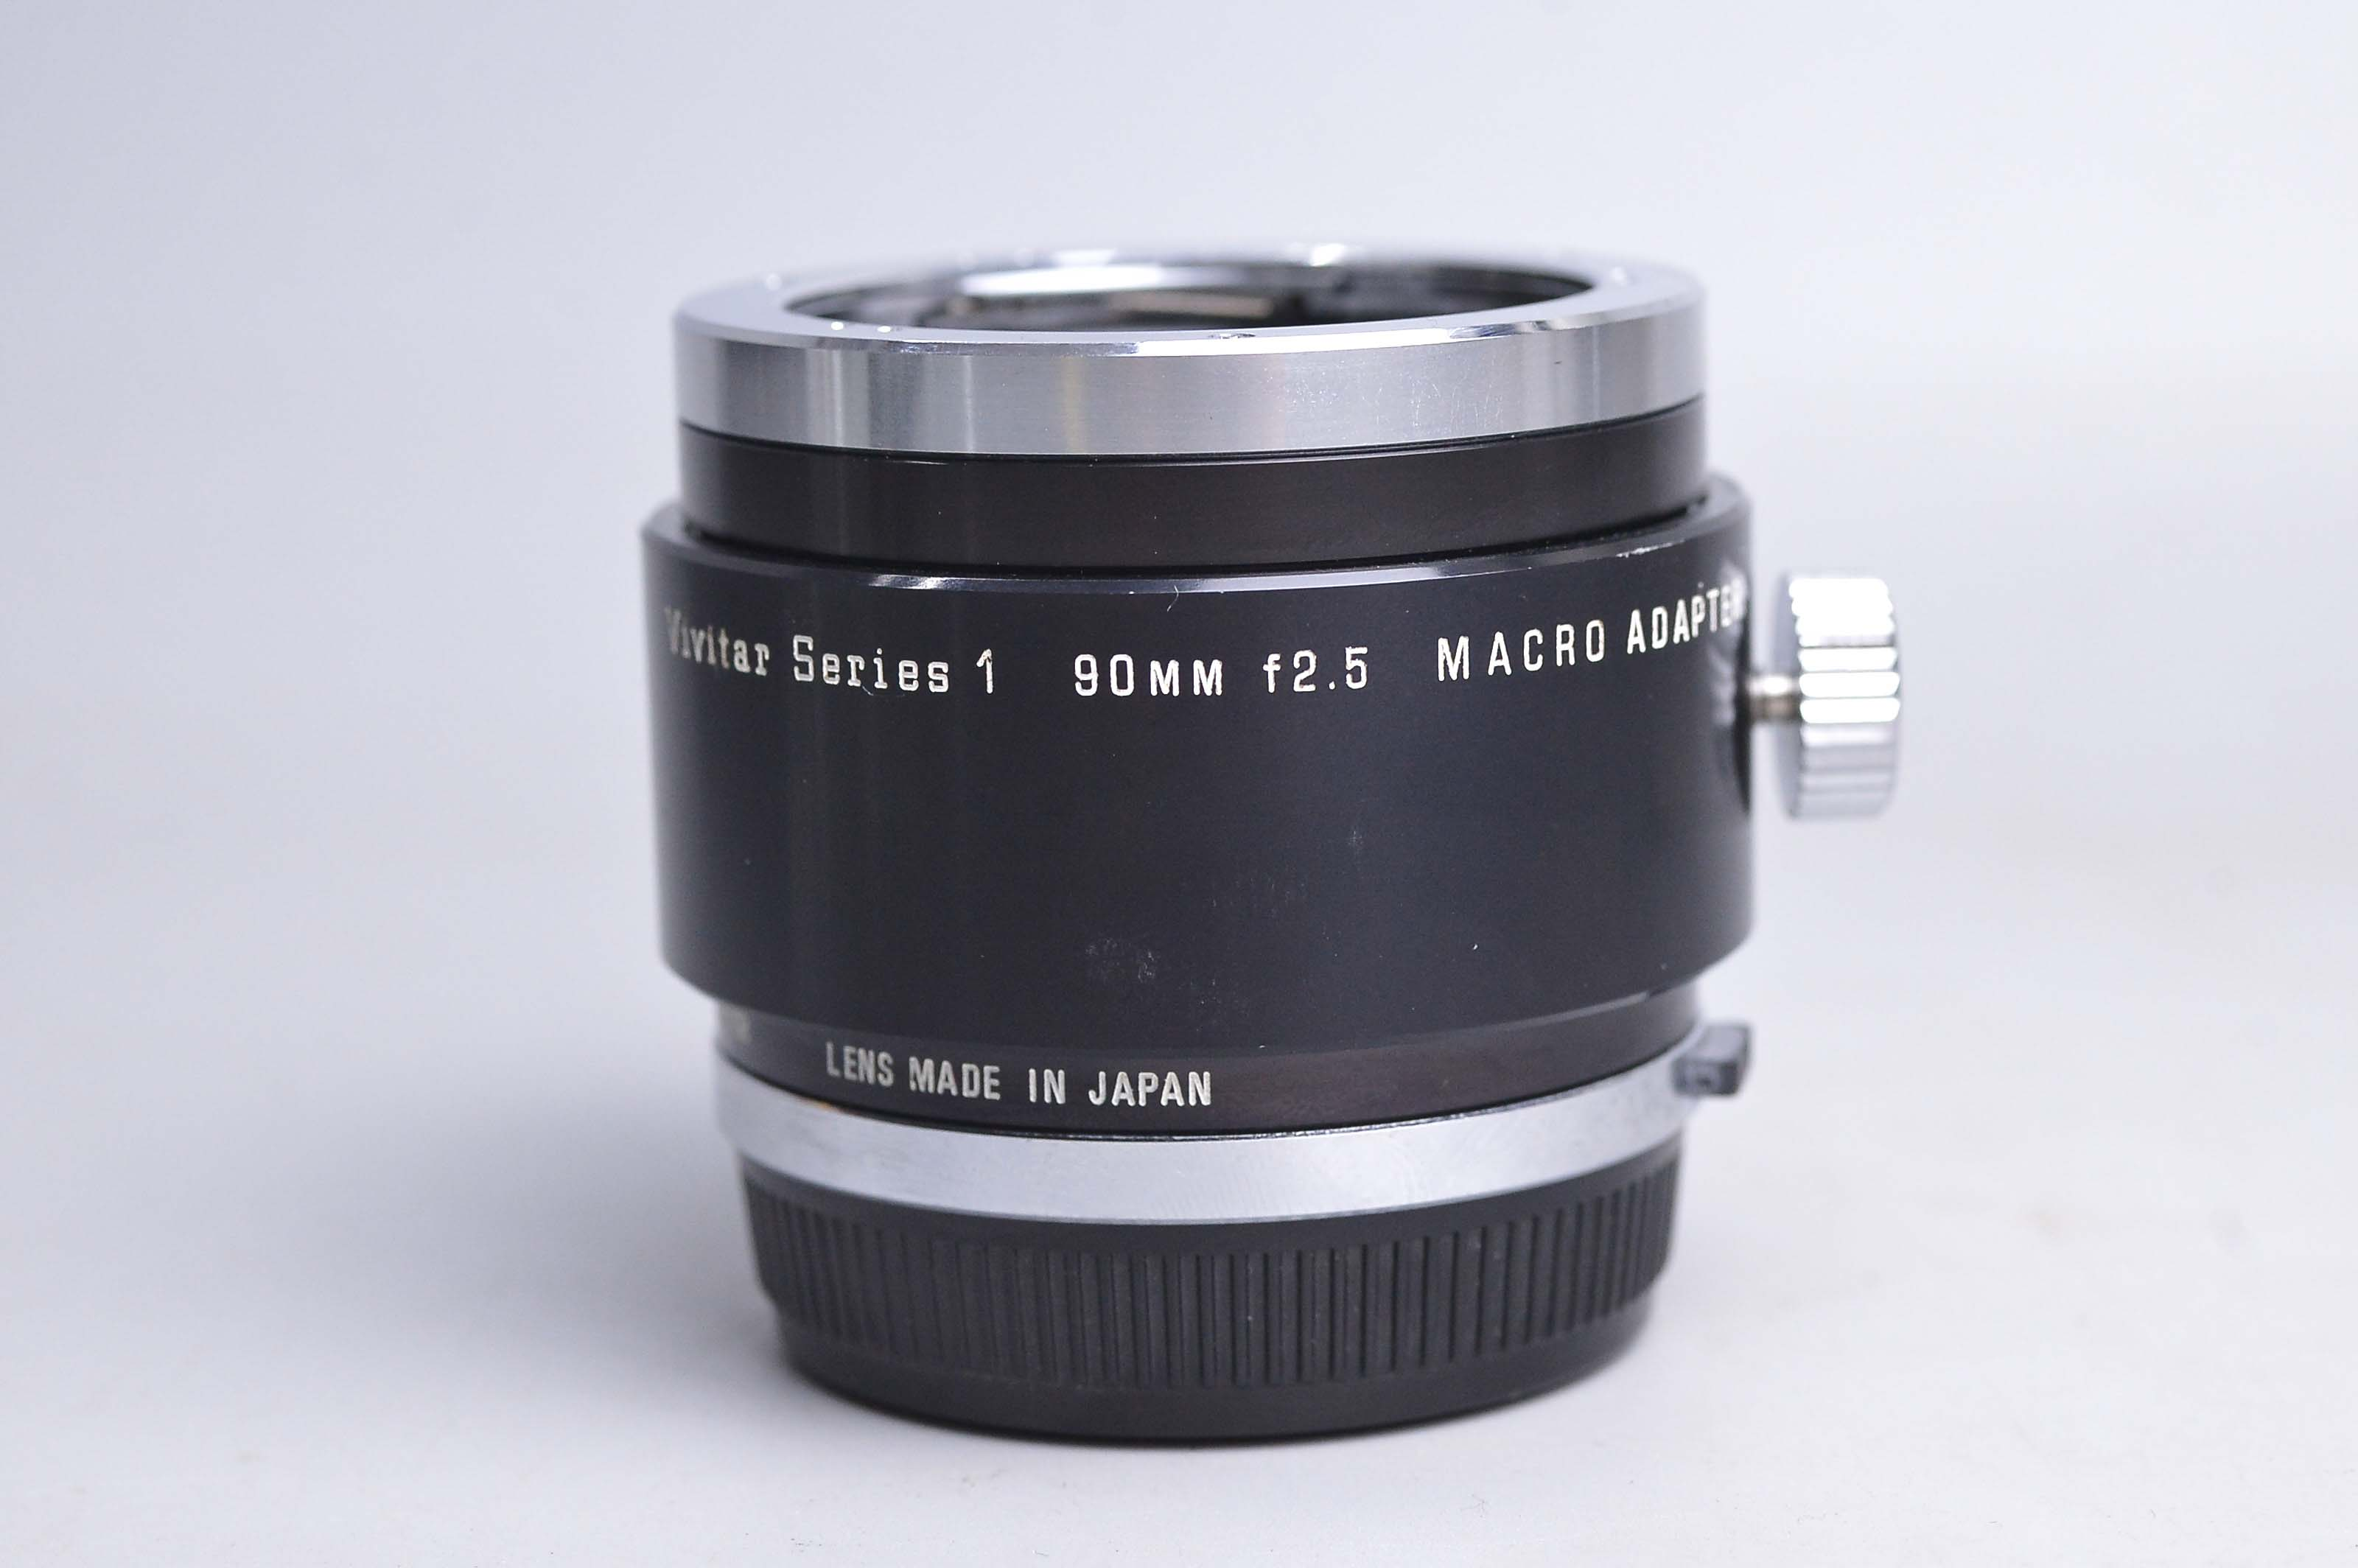 vivitar-90mm-f2-5-series-1-macro-adapter-mf-ngam-olympus-om-90-2-5-98-13198